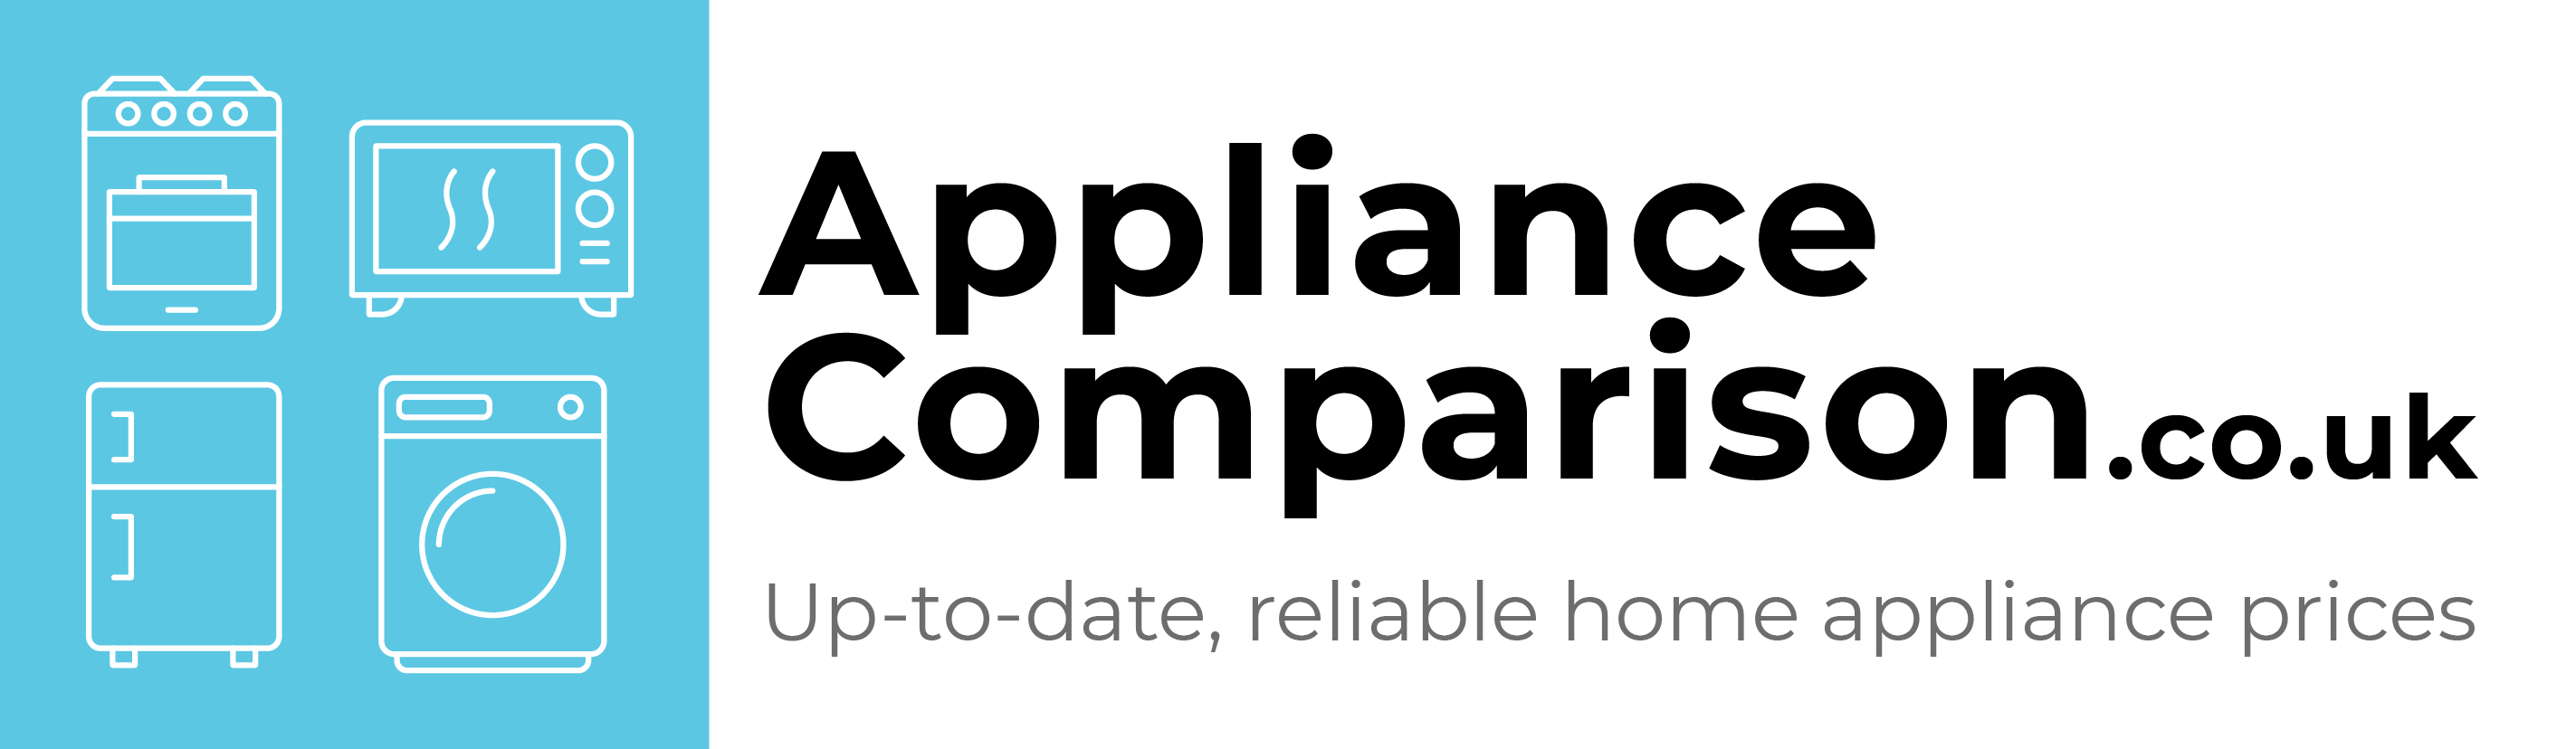 Appliance Comparison